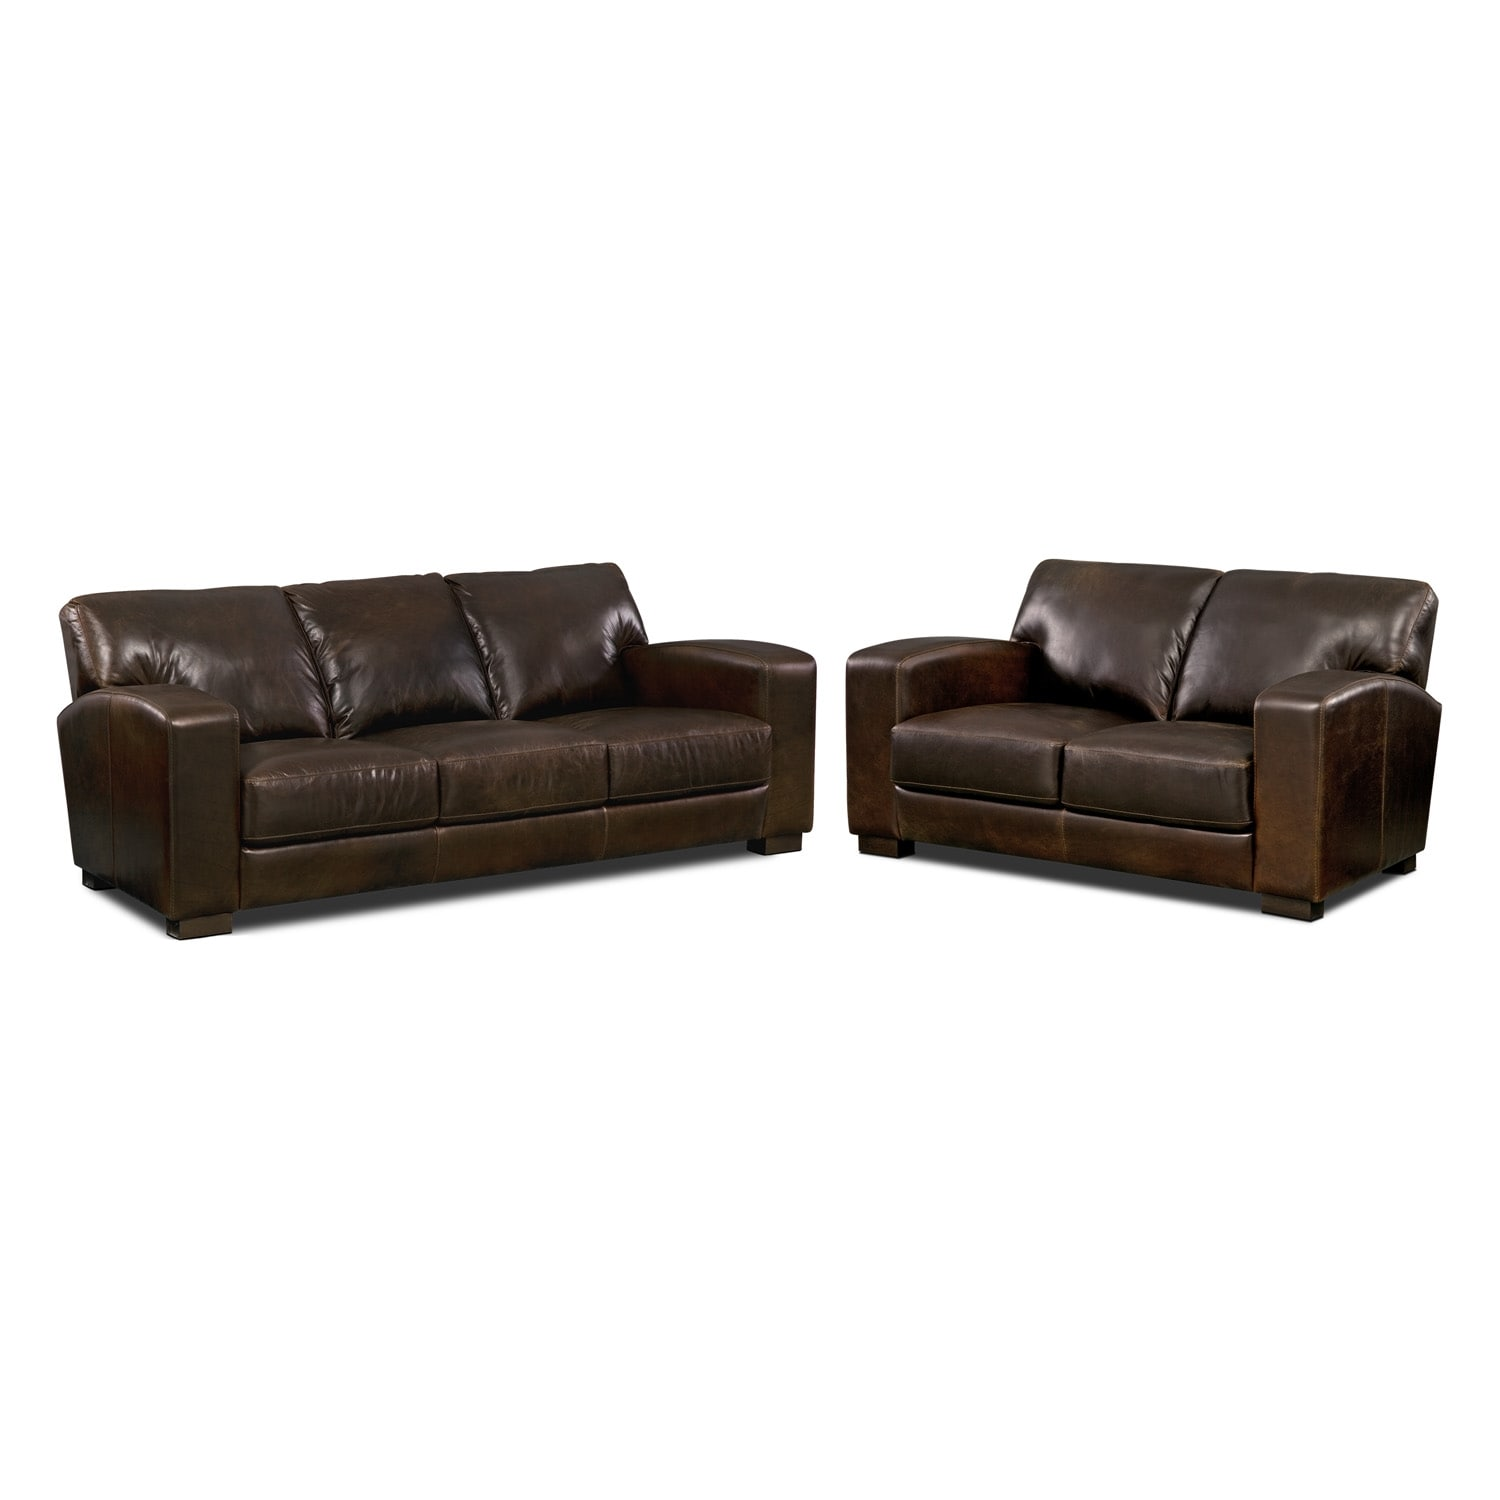 Value City Furniture New Jersey Nj And Staten Island Html Autos Weblog